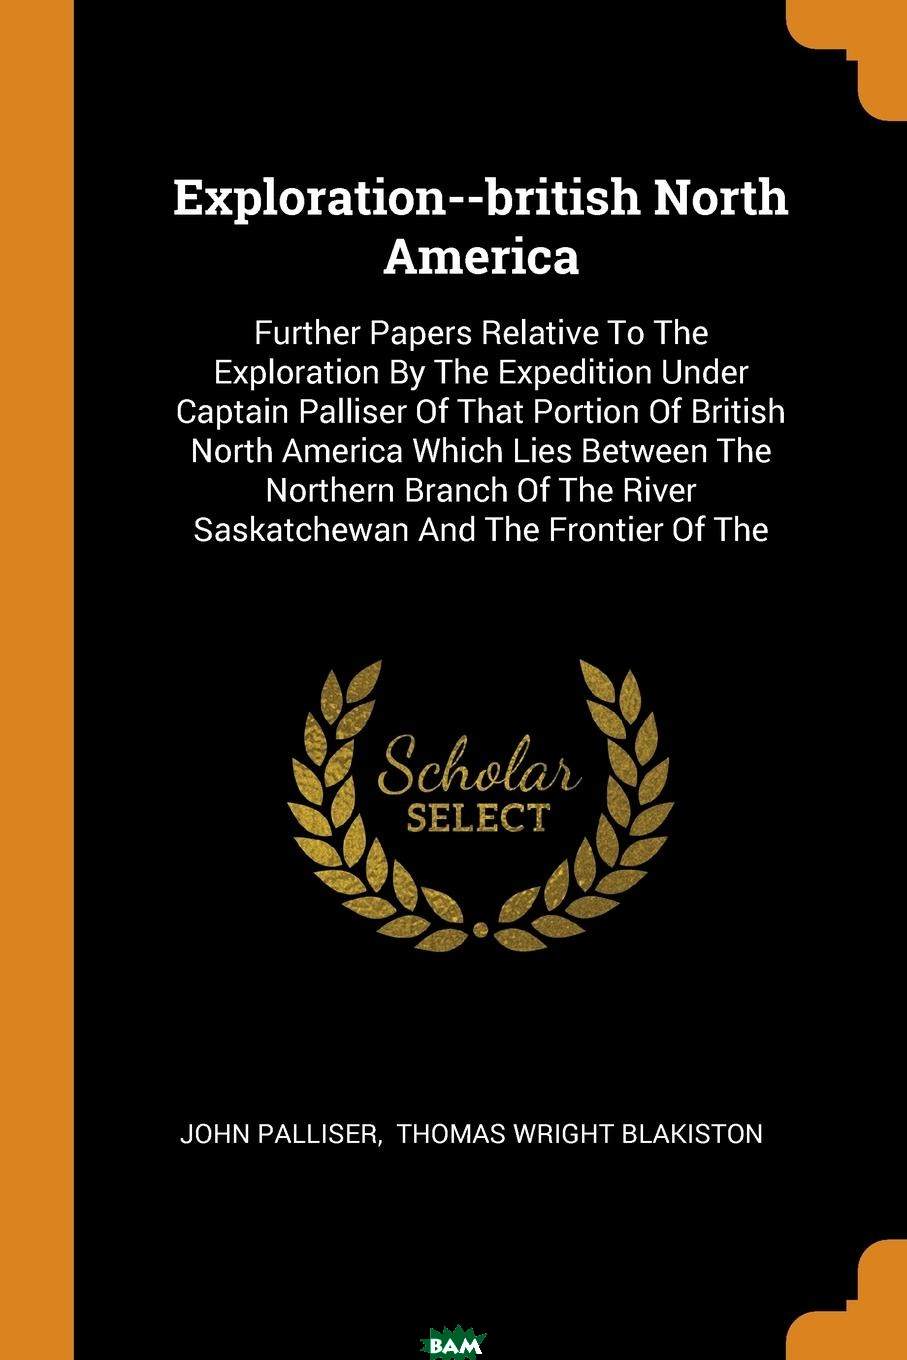 Exploration--british North America. Further Papers Relative To The Exploration By The Expedition Under Captain Palliser Of That Portion Of British North America Which Lies Between The Northern Branch, John Palliser, 9780353418769  - купить со скидкой